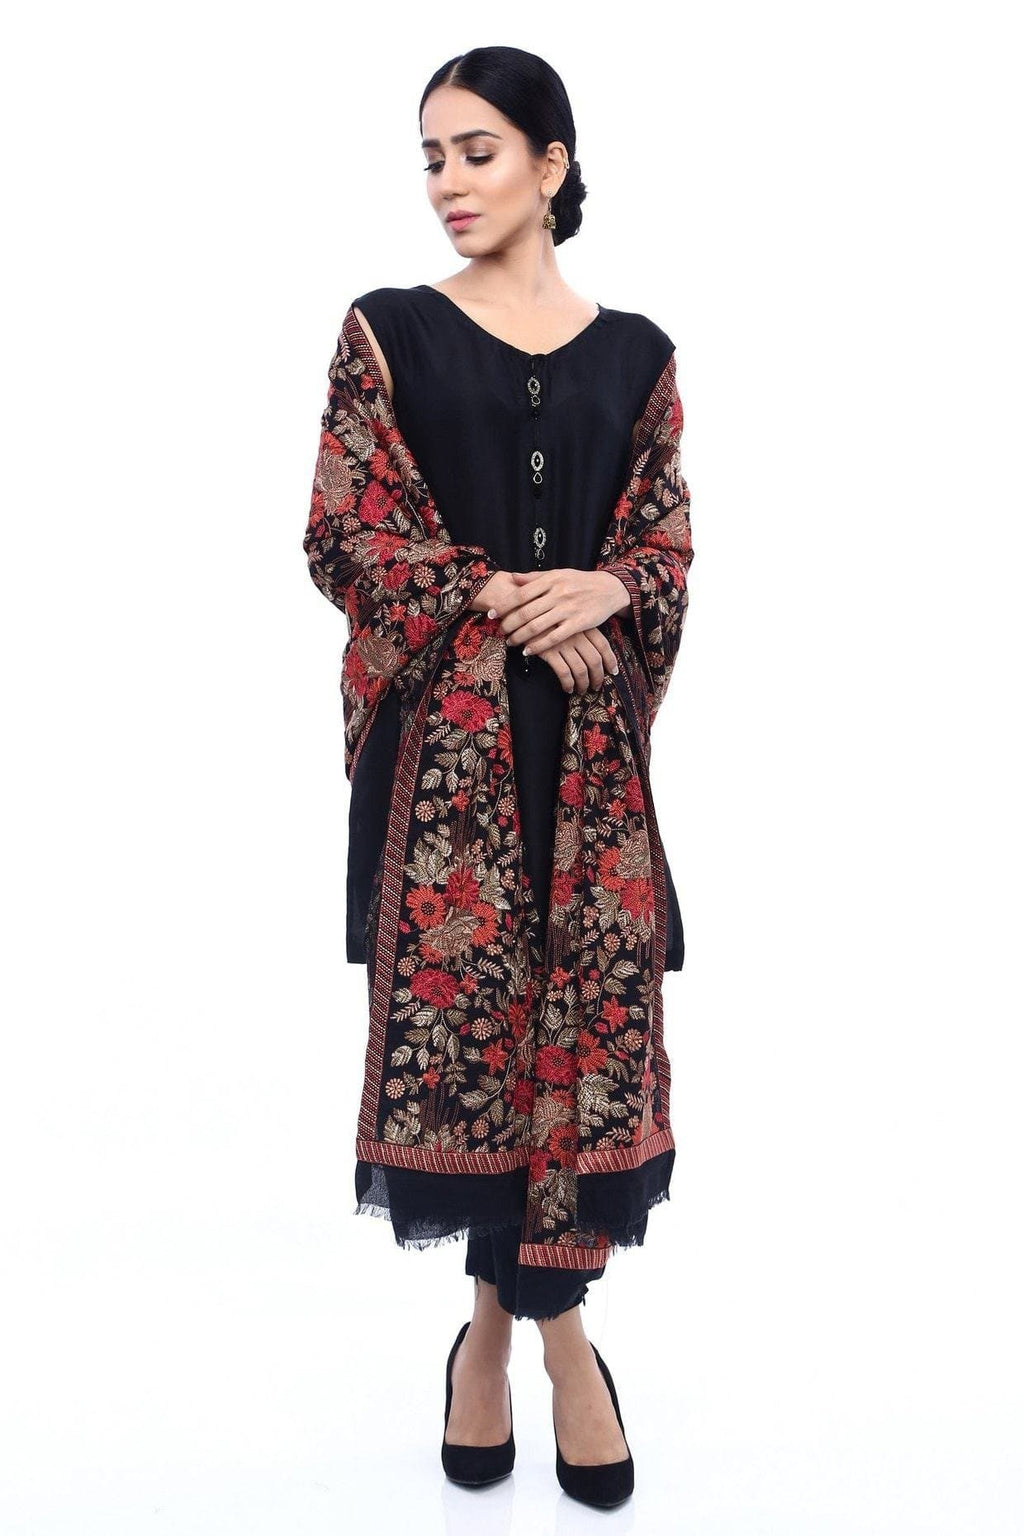 Bareeze Br-0005 Formal Heavy Embroidered Karandi Lawn shawl